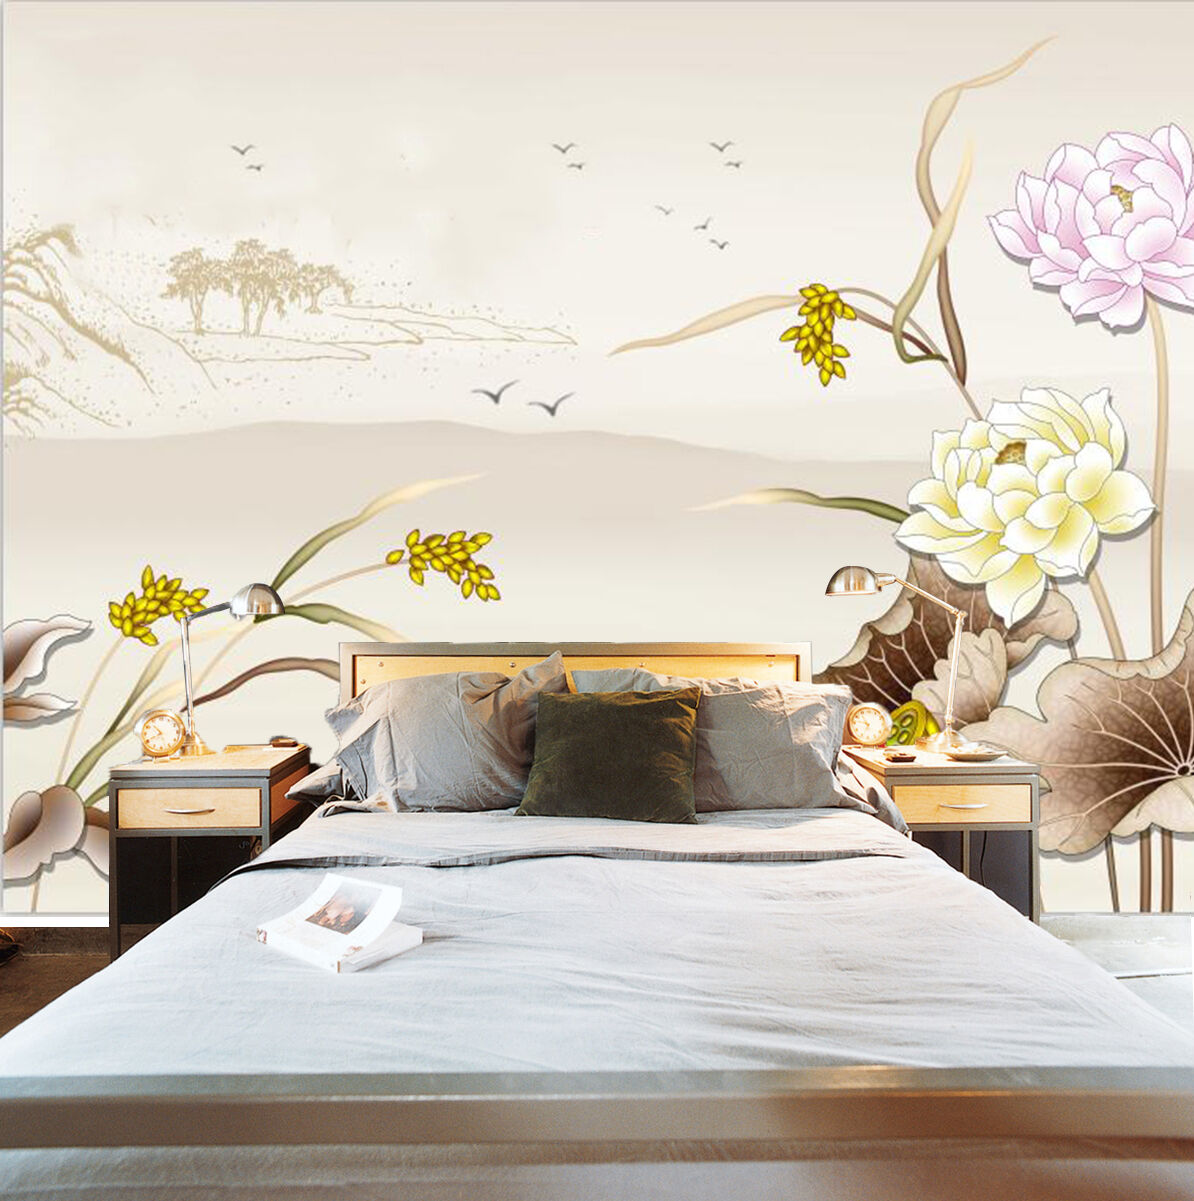 3D Fresh Flower And Birds 03 Paper Wall Print Wall Decal Wall Deco Indoor Murals